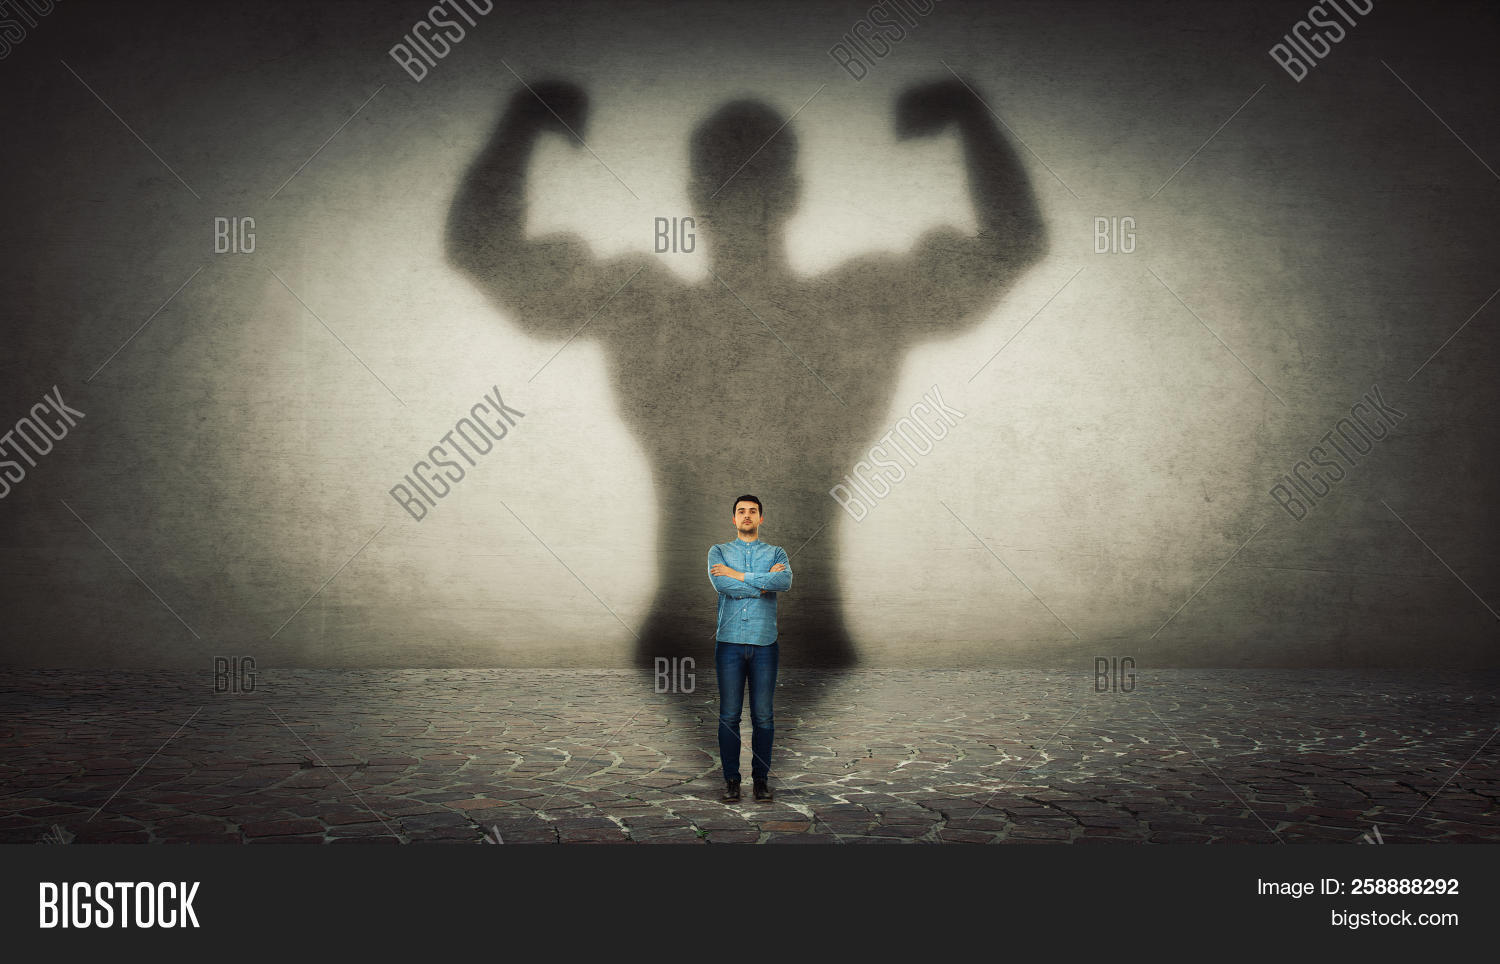 background,biceps,big,bodybuilder,boss,brave,business,businessman,career,cast,change,competition,concept,confident,crsossed,determination,determined,energy,force,hands,hero,inner,innovation,leader,leadership,male,man,manager,muscle,muscular,people,person,power,powerful,shadow,silhouette,small,strength,strong,success,successful,suit,super,superhero,transform,transformation,wall,winner,worker,young